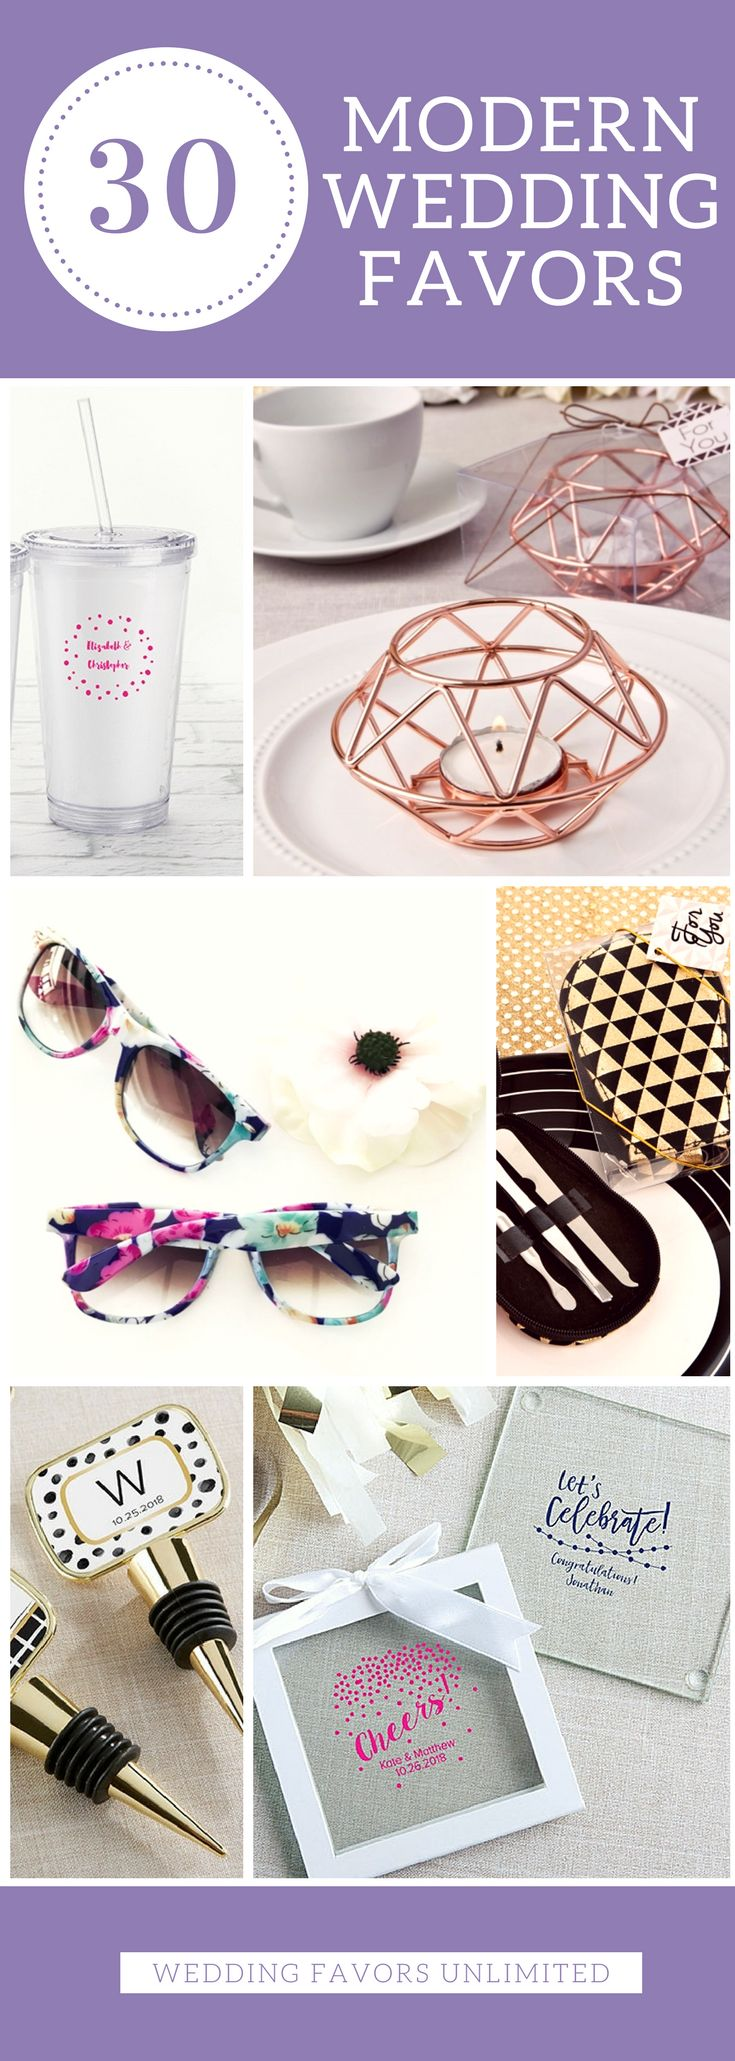 113 best Favors: Kitchenware/Barware images on Pinterest ...